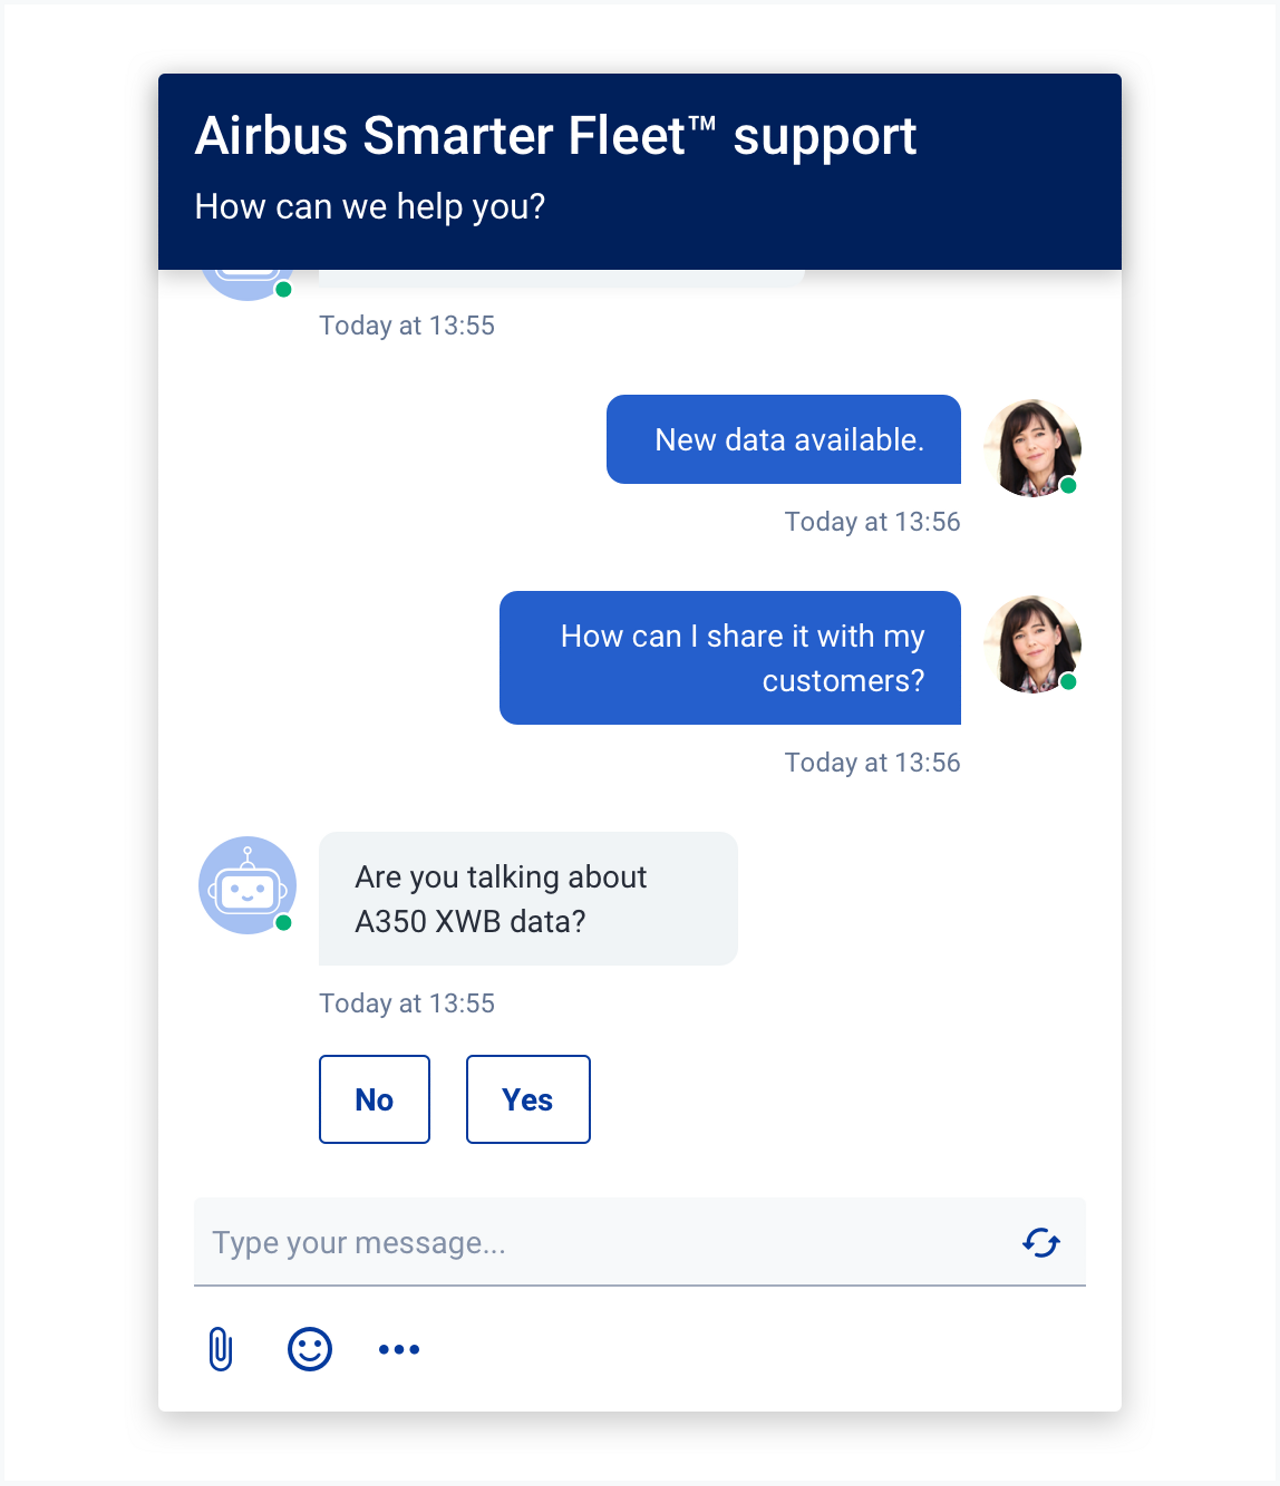 You can see a chat interface where a woman talking with a bot.